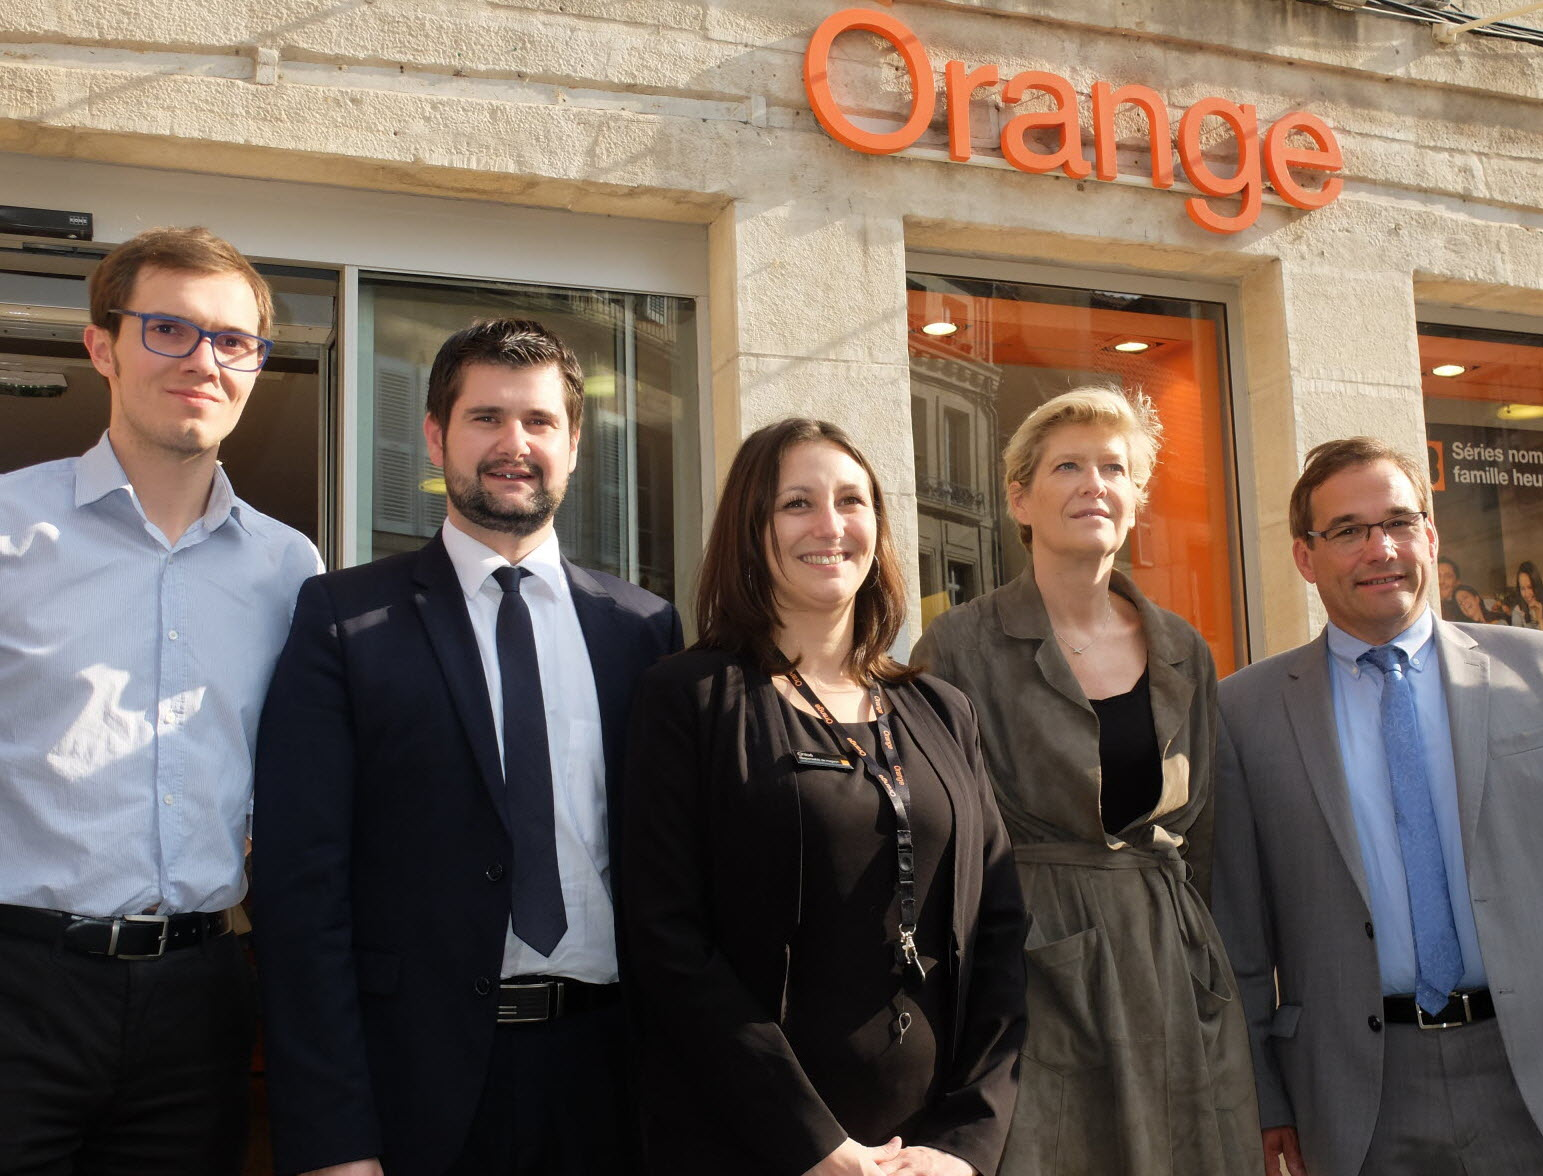 dole operateur orange ne fermera pas